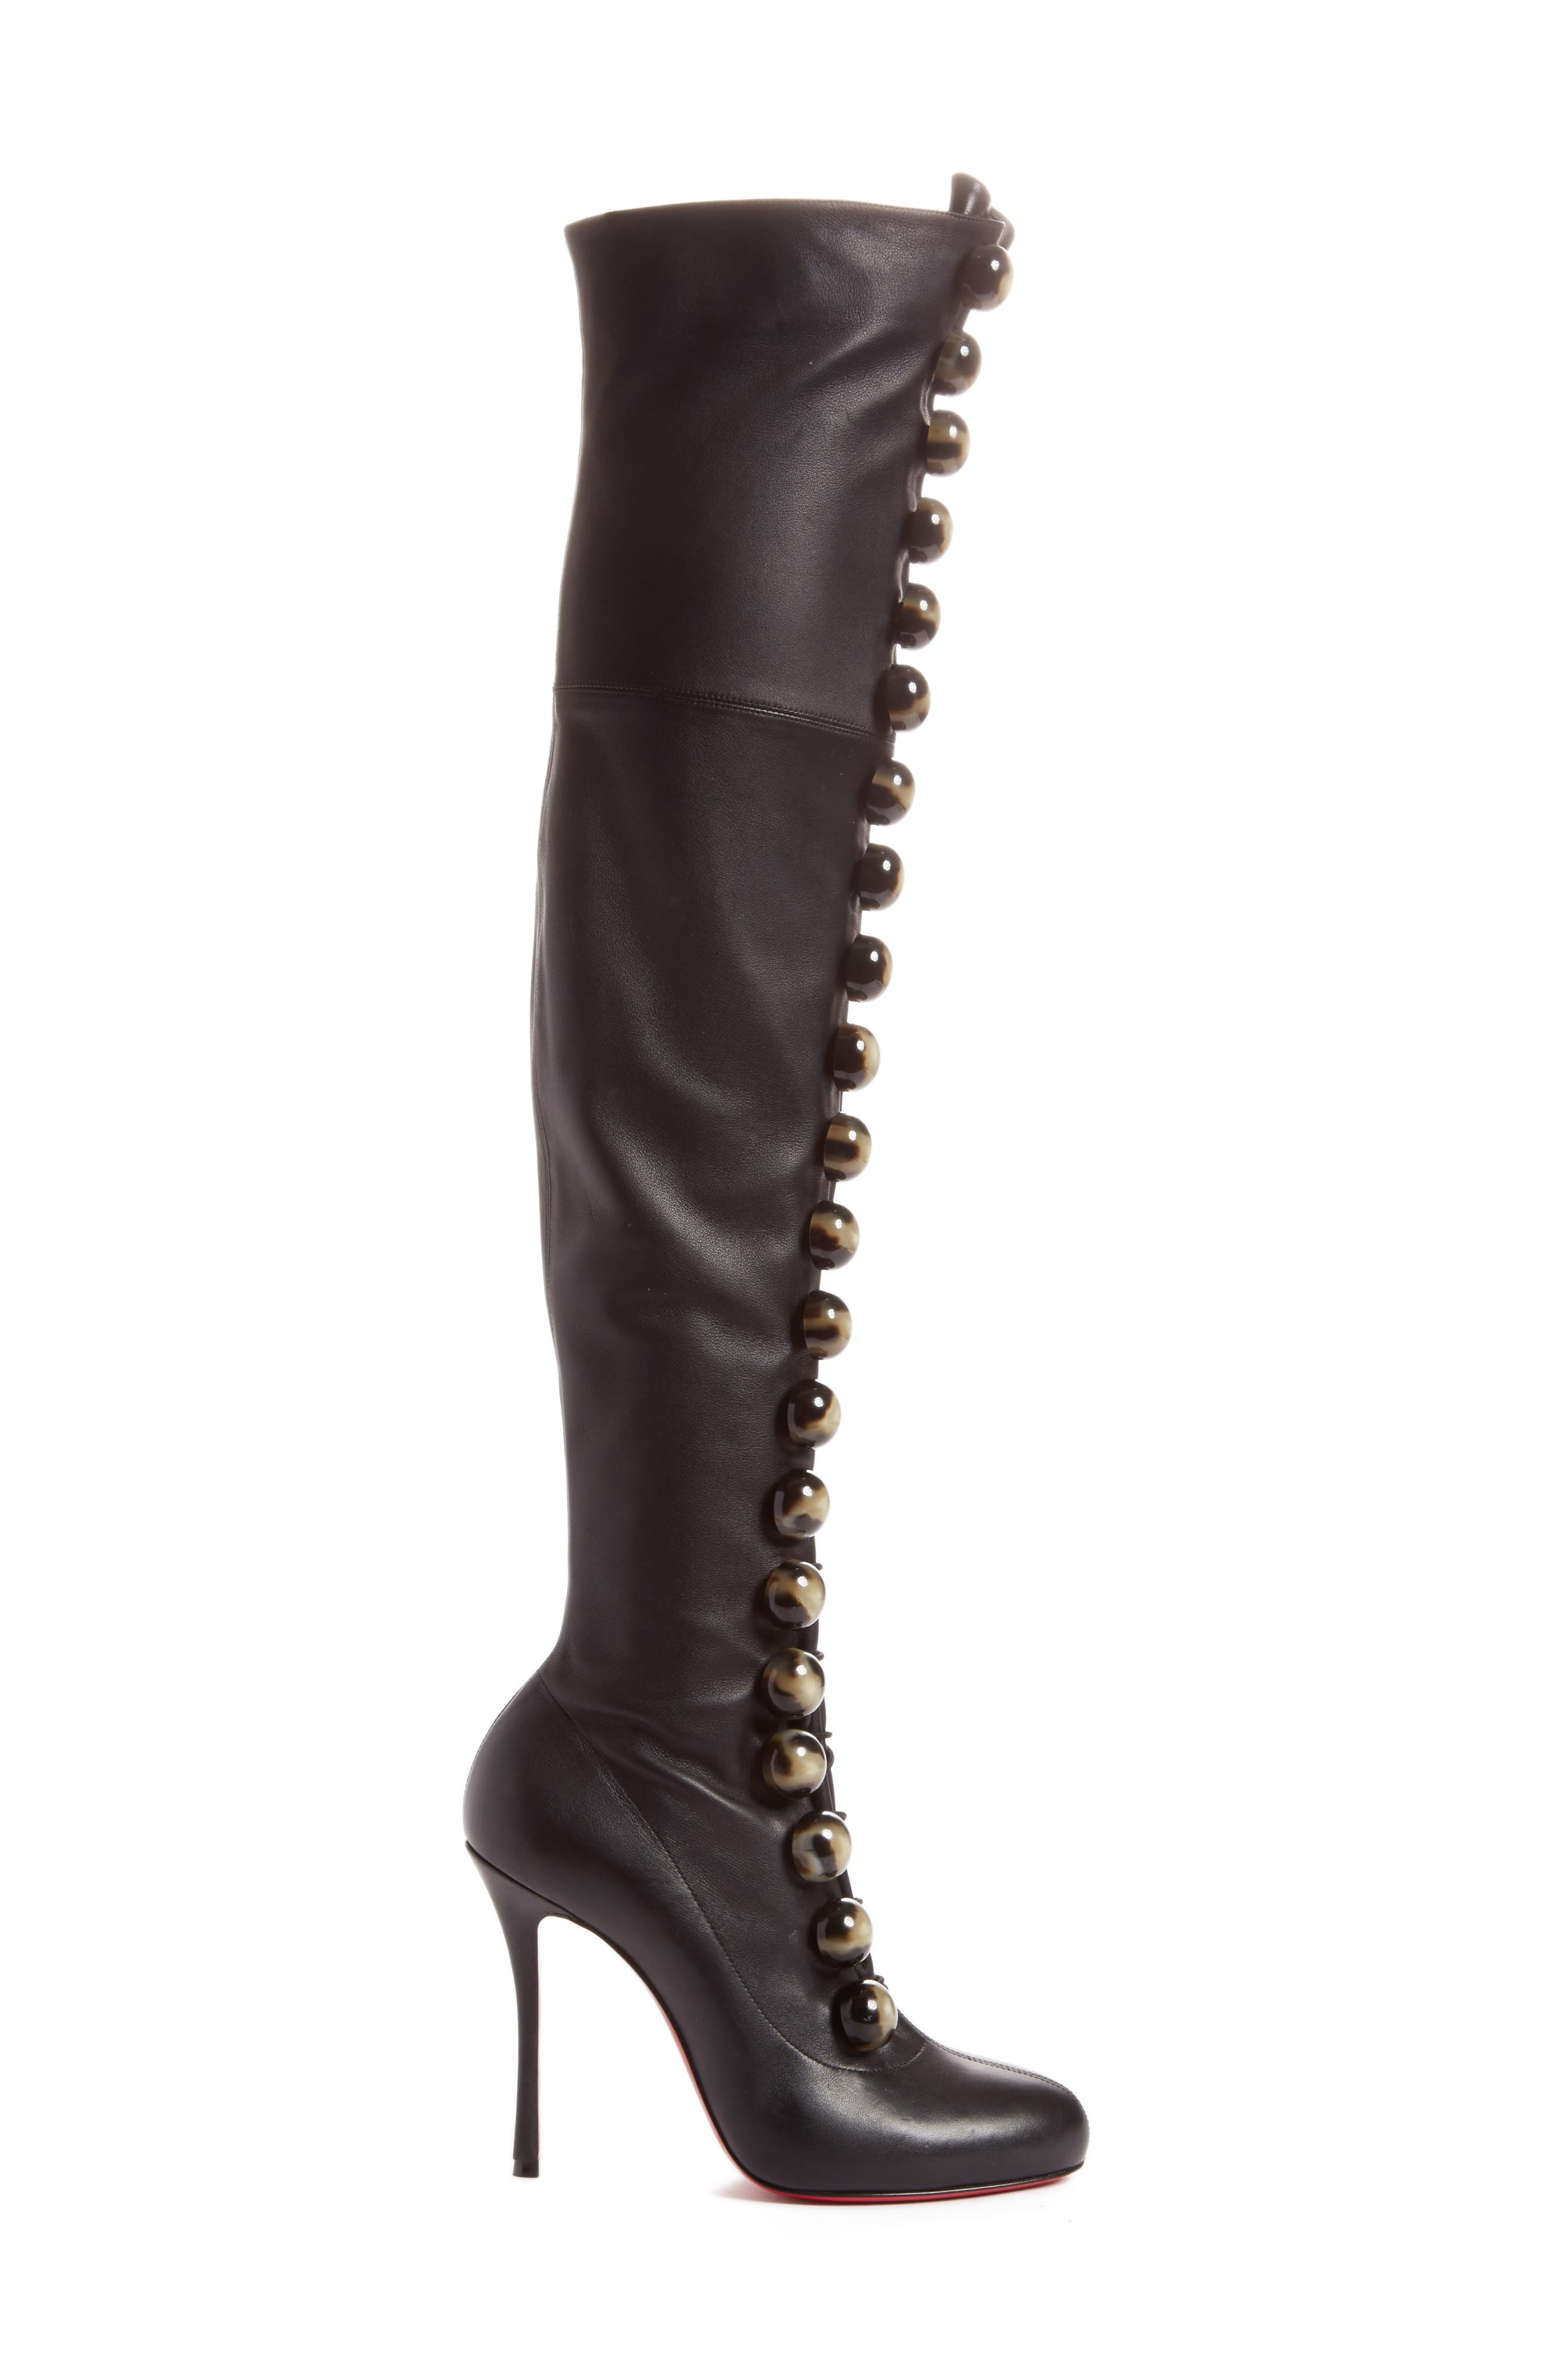 Fabiola Over the Knee Boot,                             Alternate thumbnail 3, color,                             001